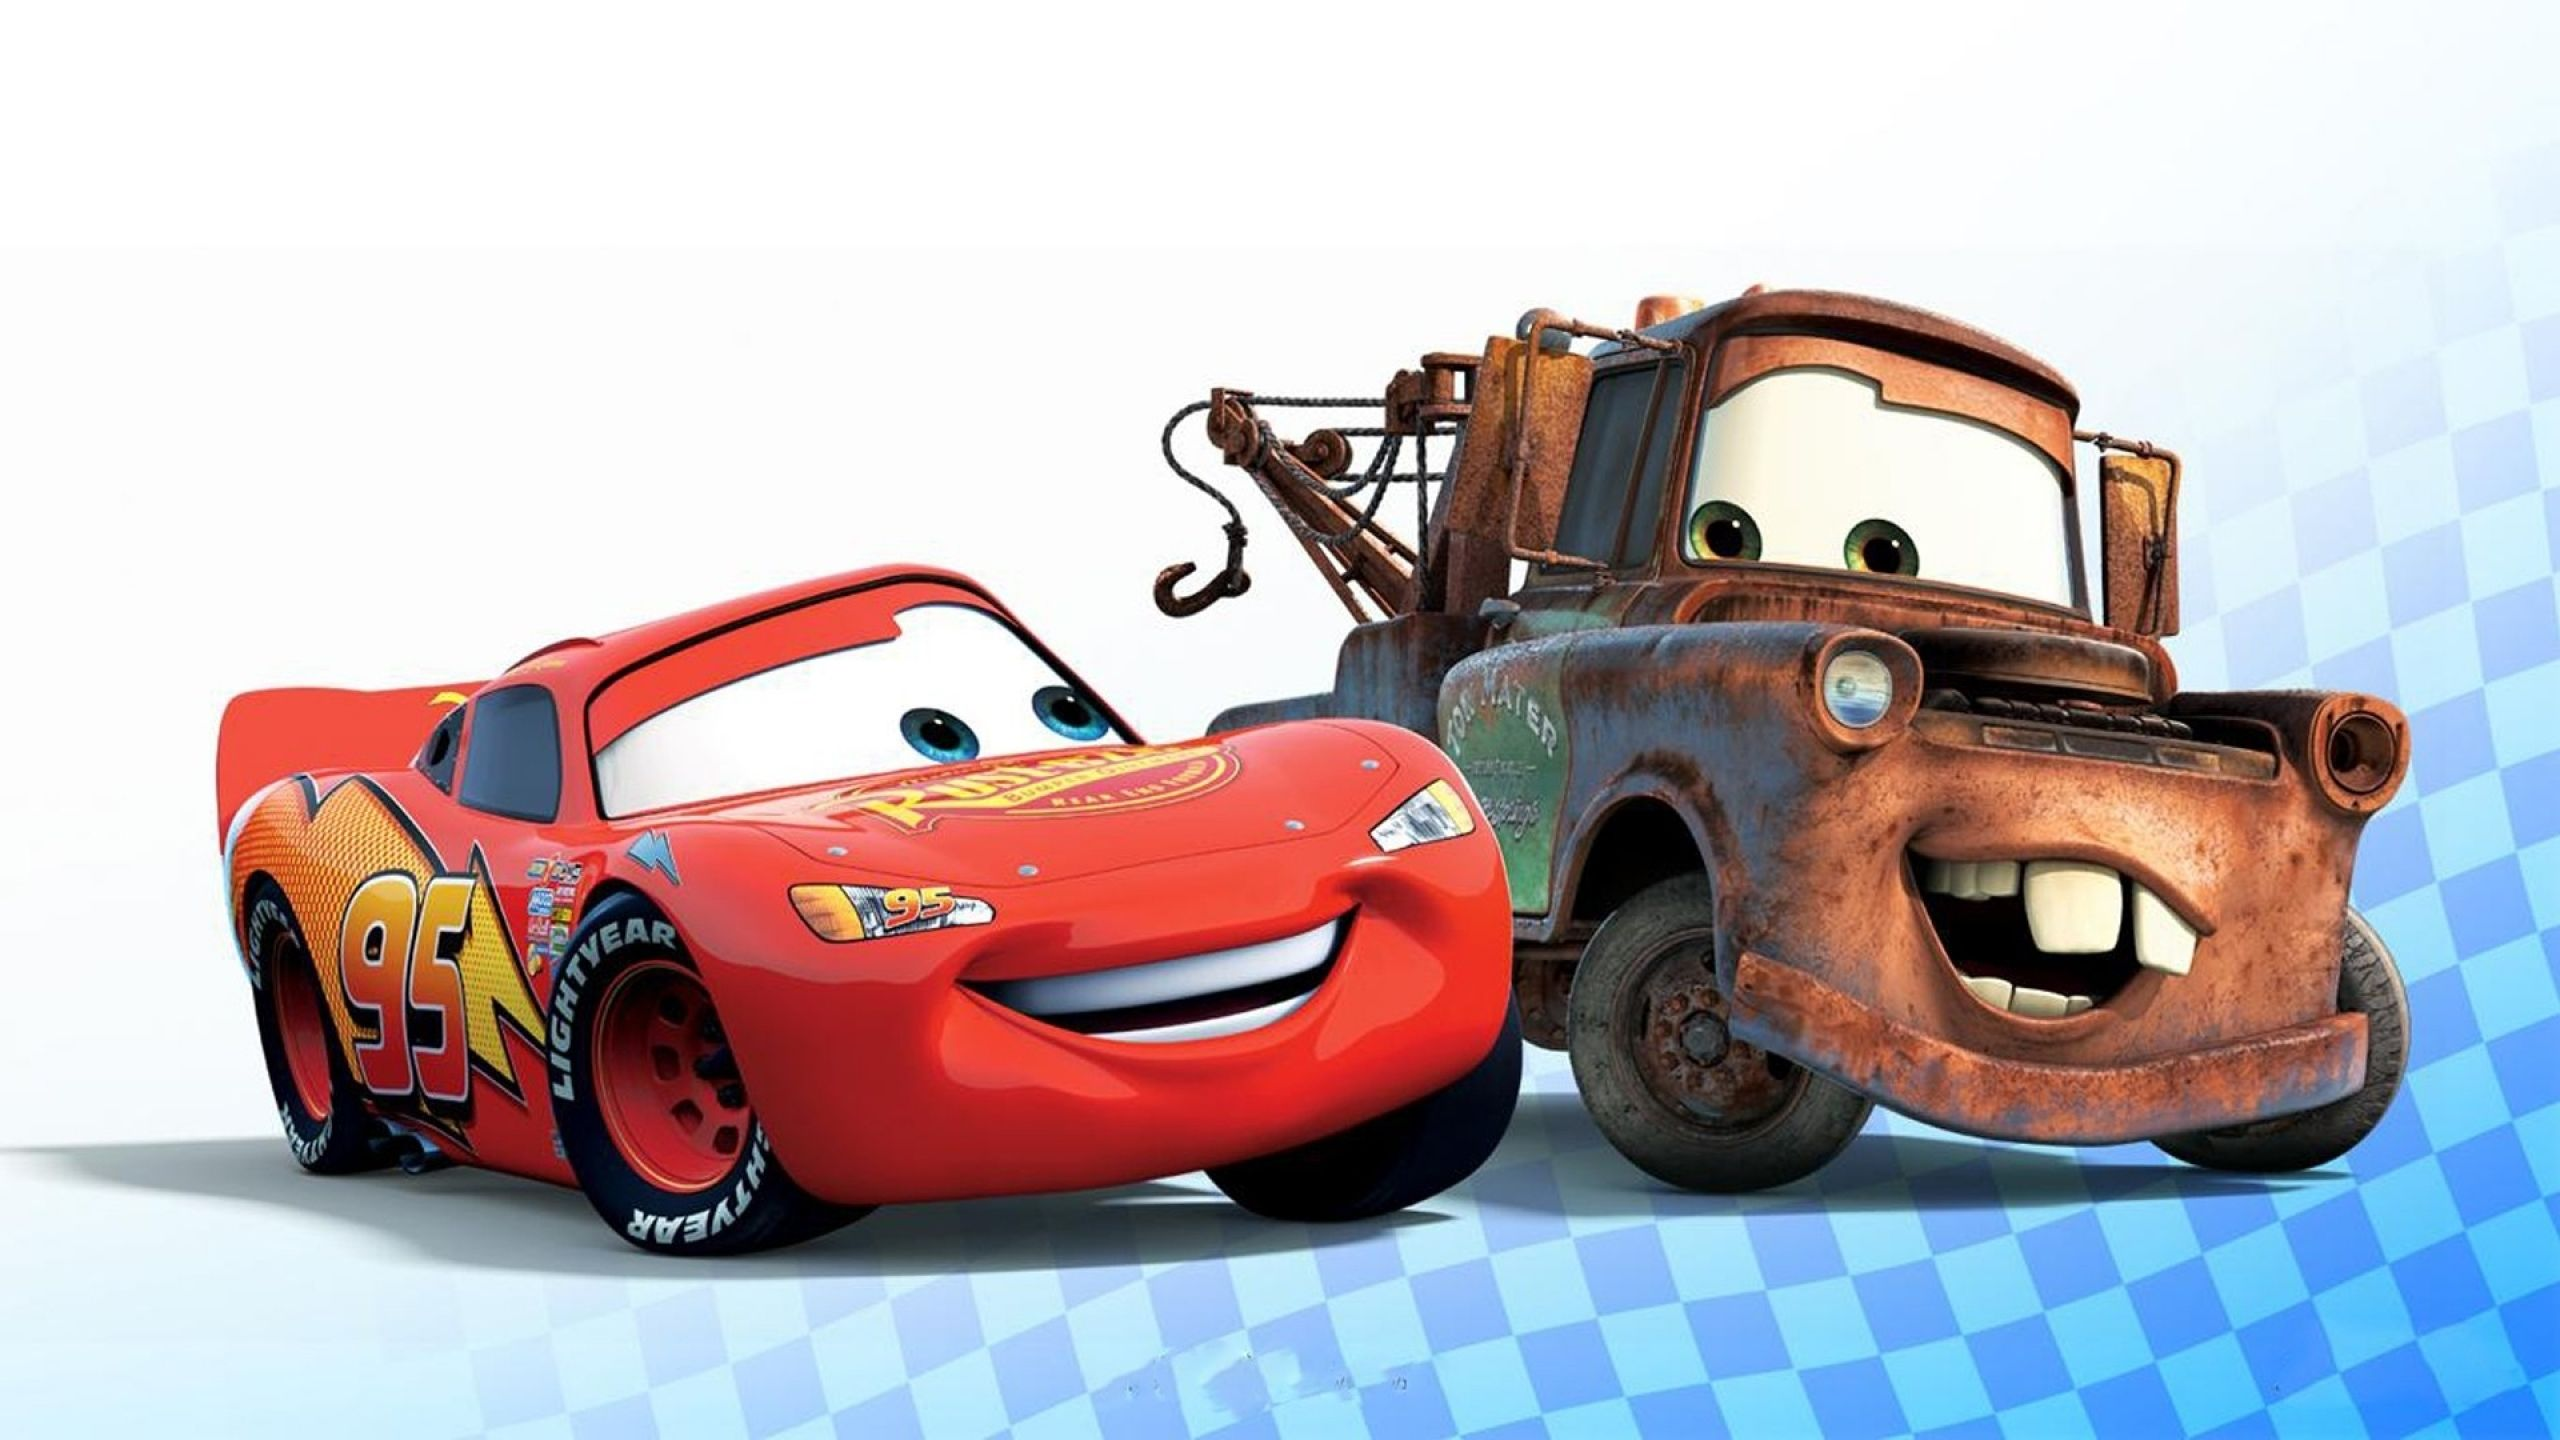 Pixar Movies Cars Mater Lightning Mcqueen Disney 1920x1080 Wallpaper Art HD